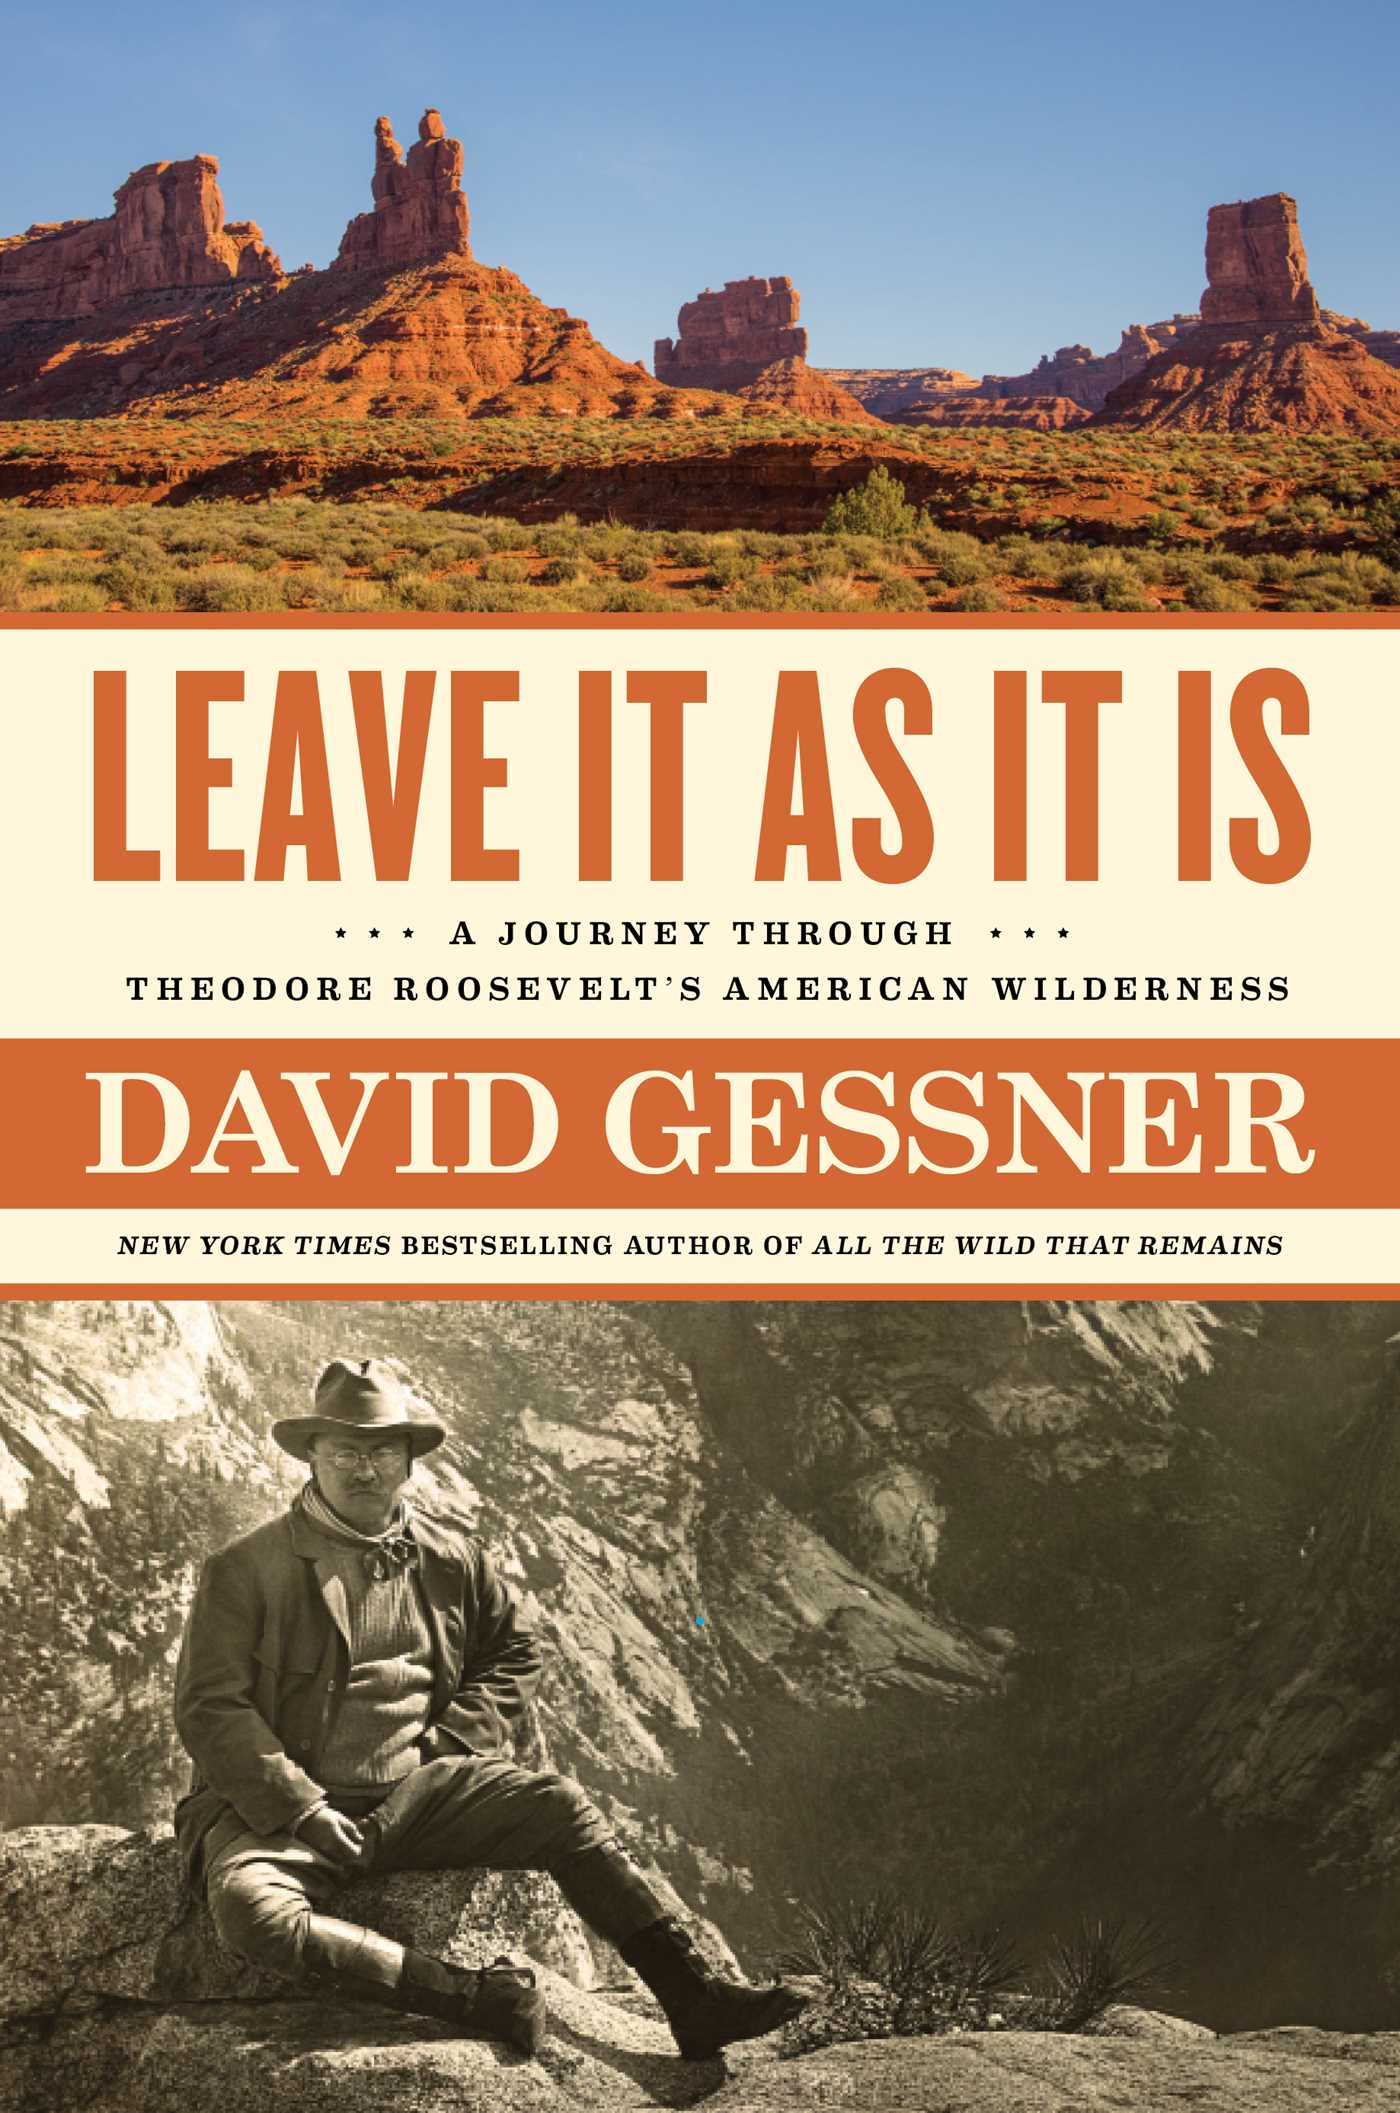 Leave It As It Is by David Gessner